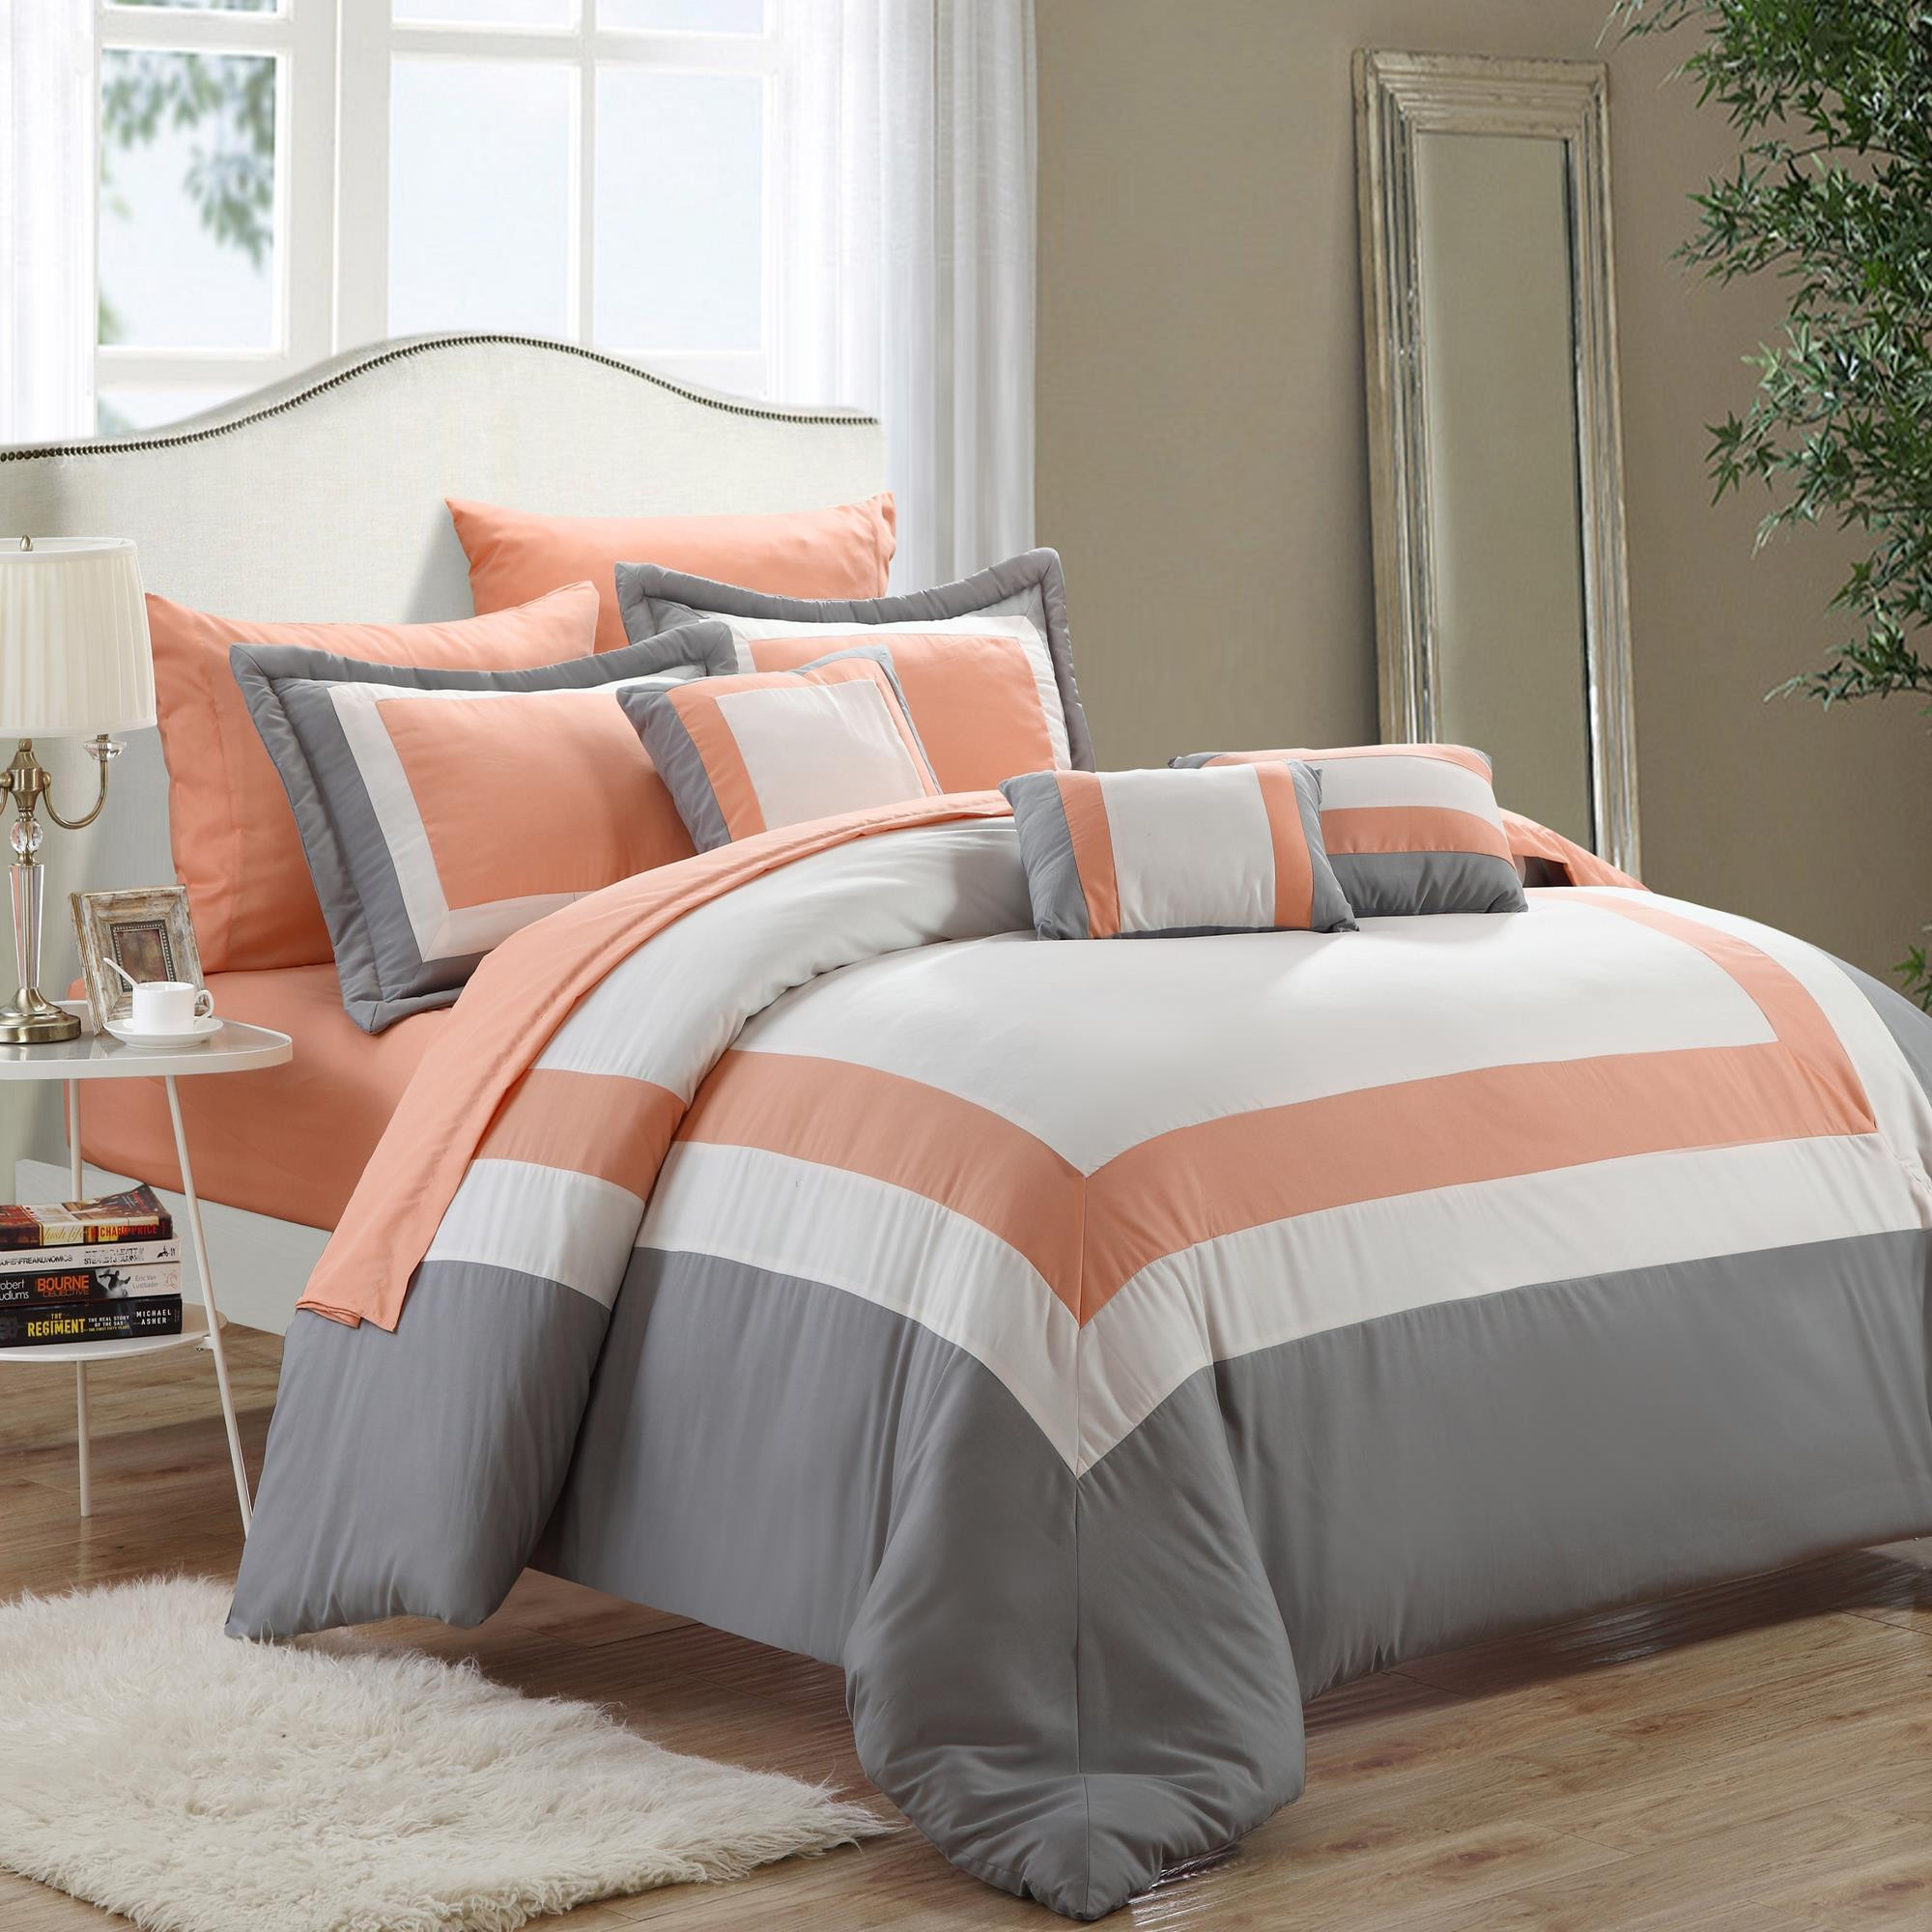 stripes grey orange dark and w xl set in htm gray twin white comforter p